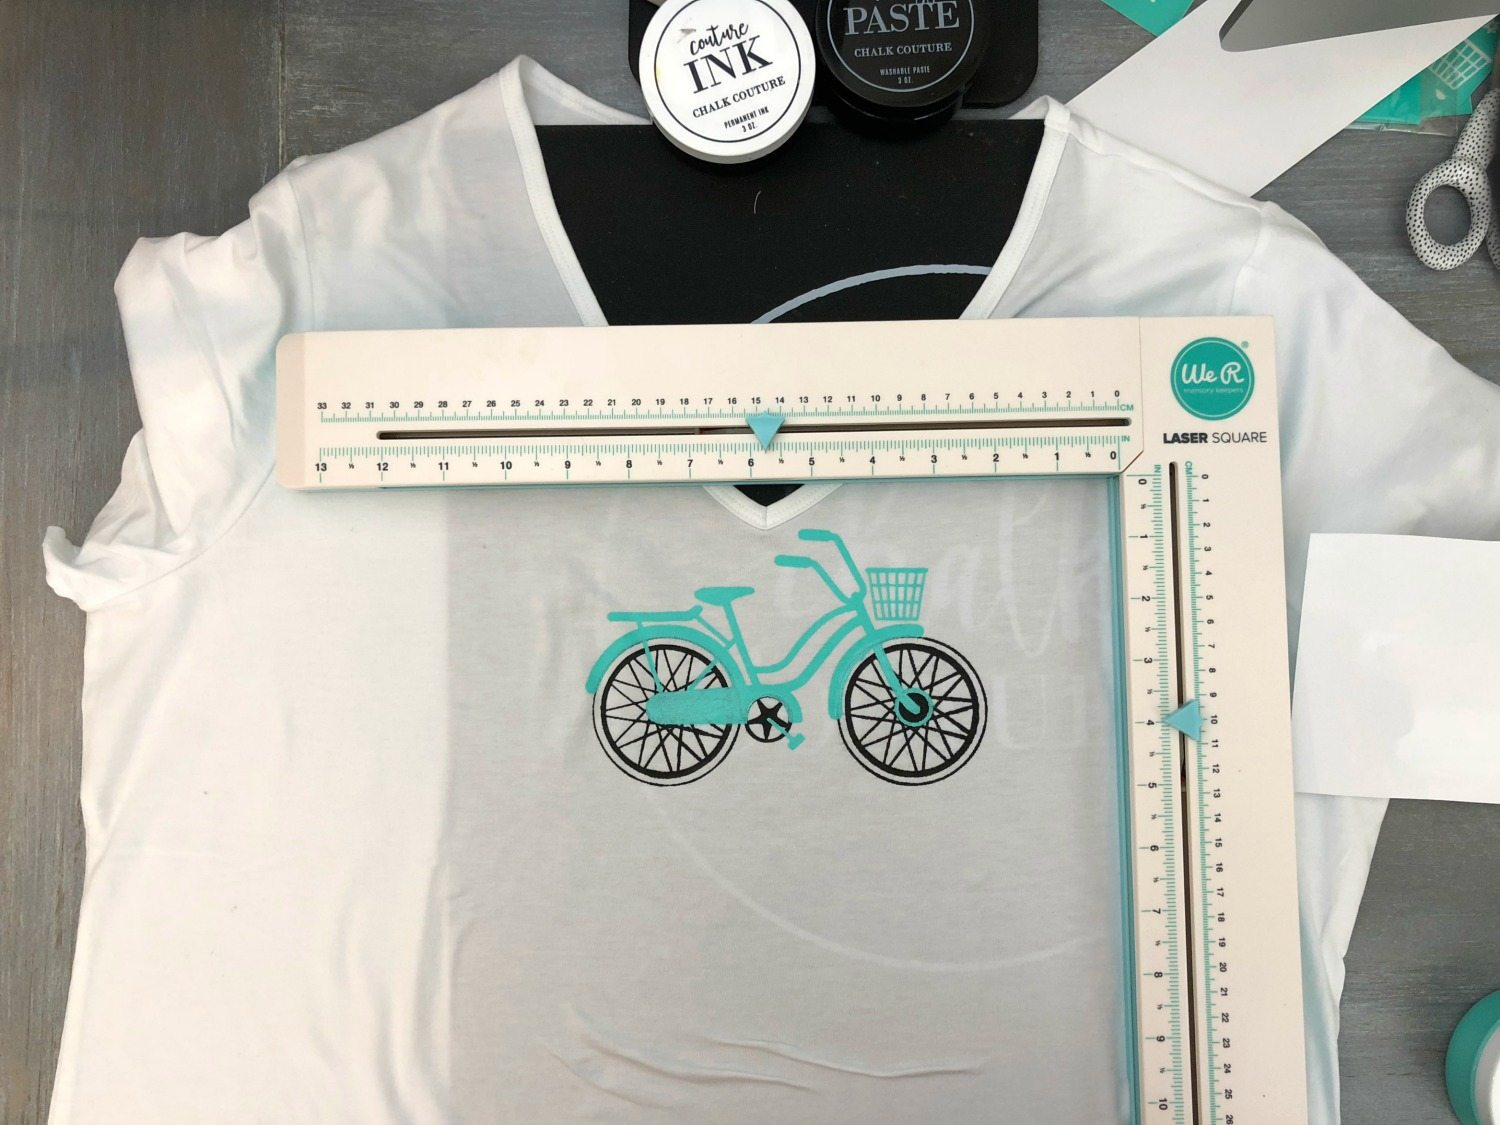 how to make a silk screen t-shirt - Chalk Couture